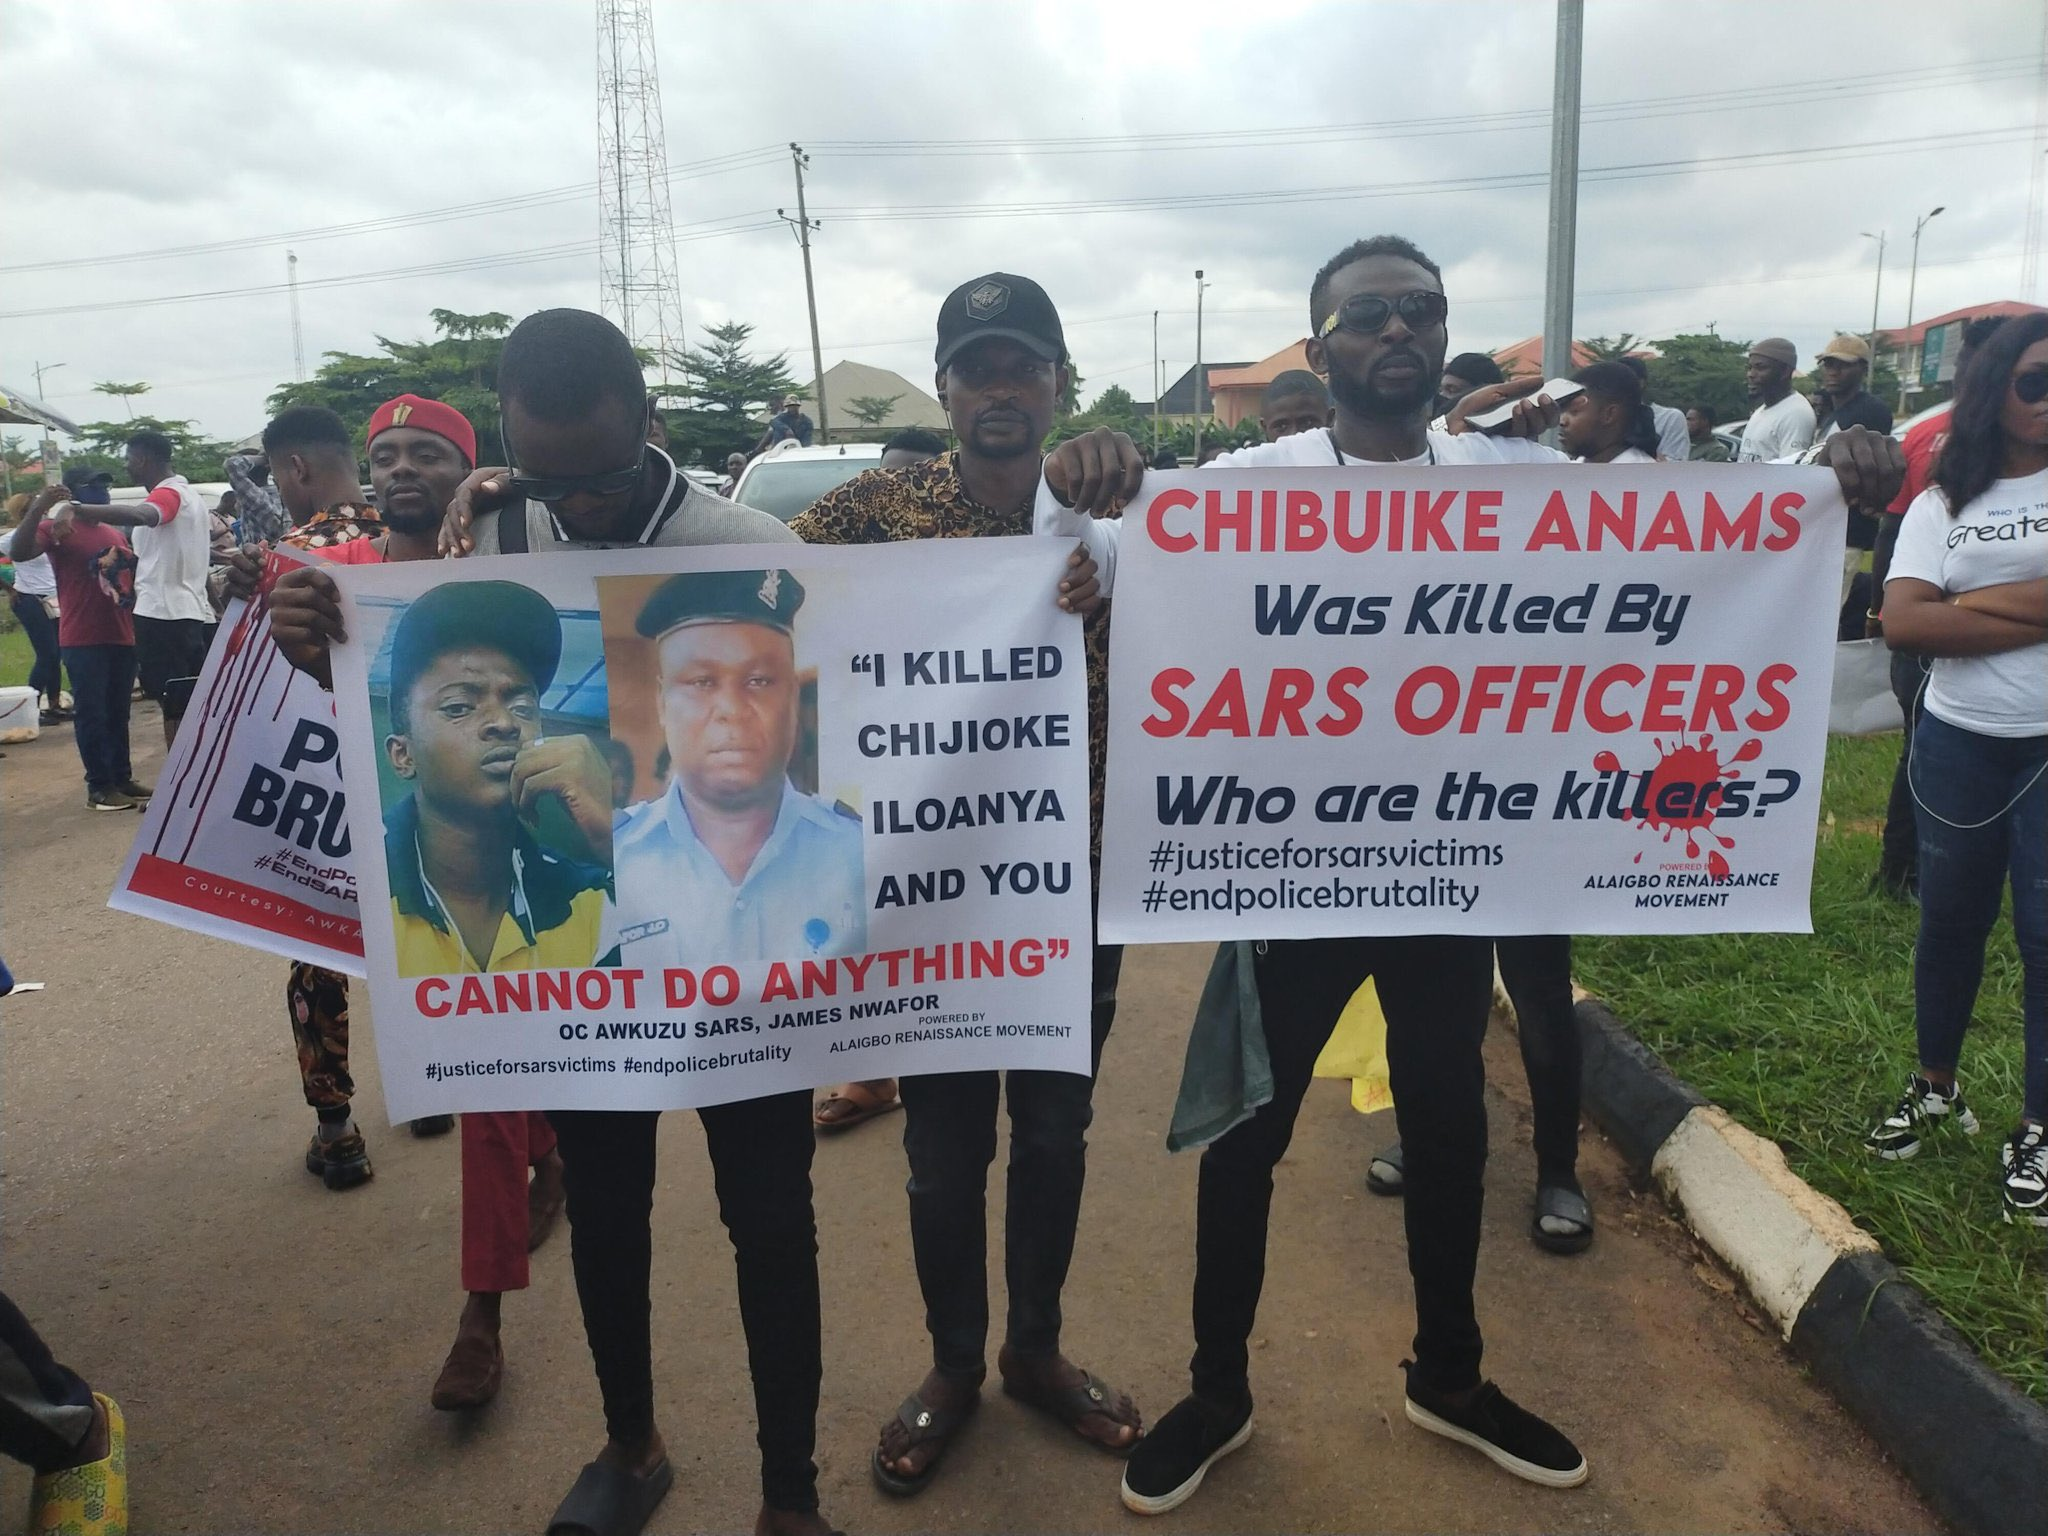 #EndSars: Obiano sacks aide, James Nwafor, as protesters hit hard in Anambra